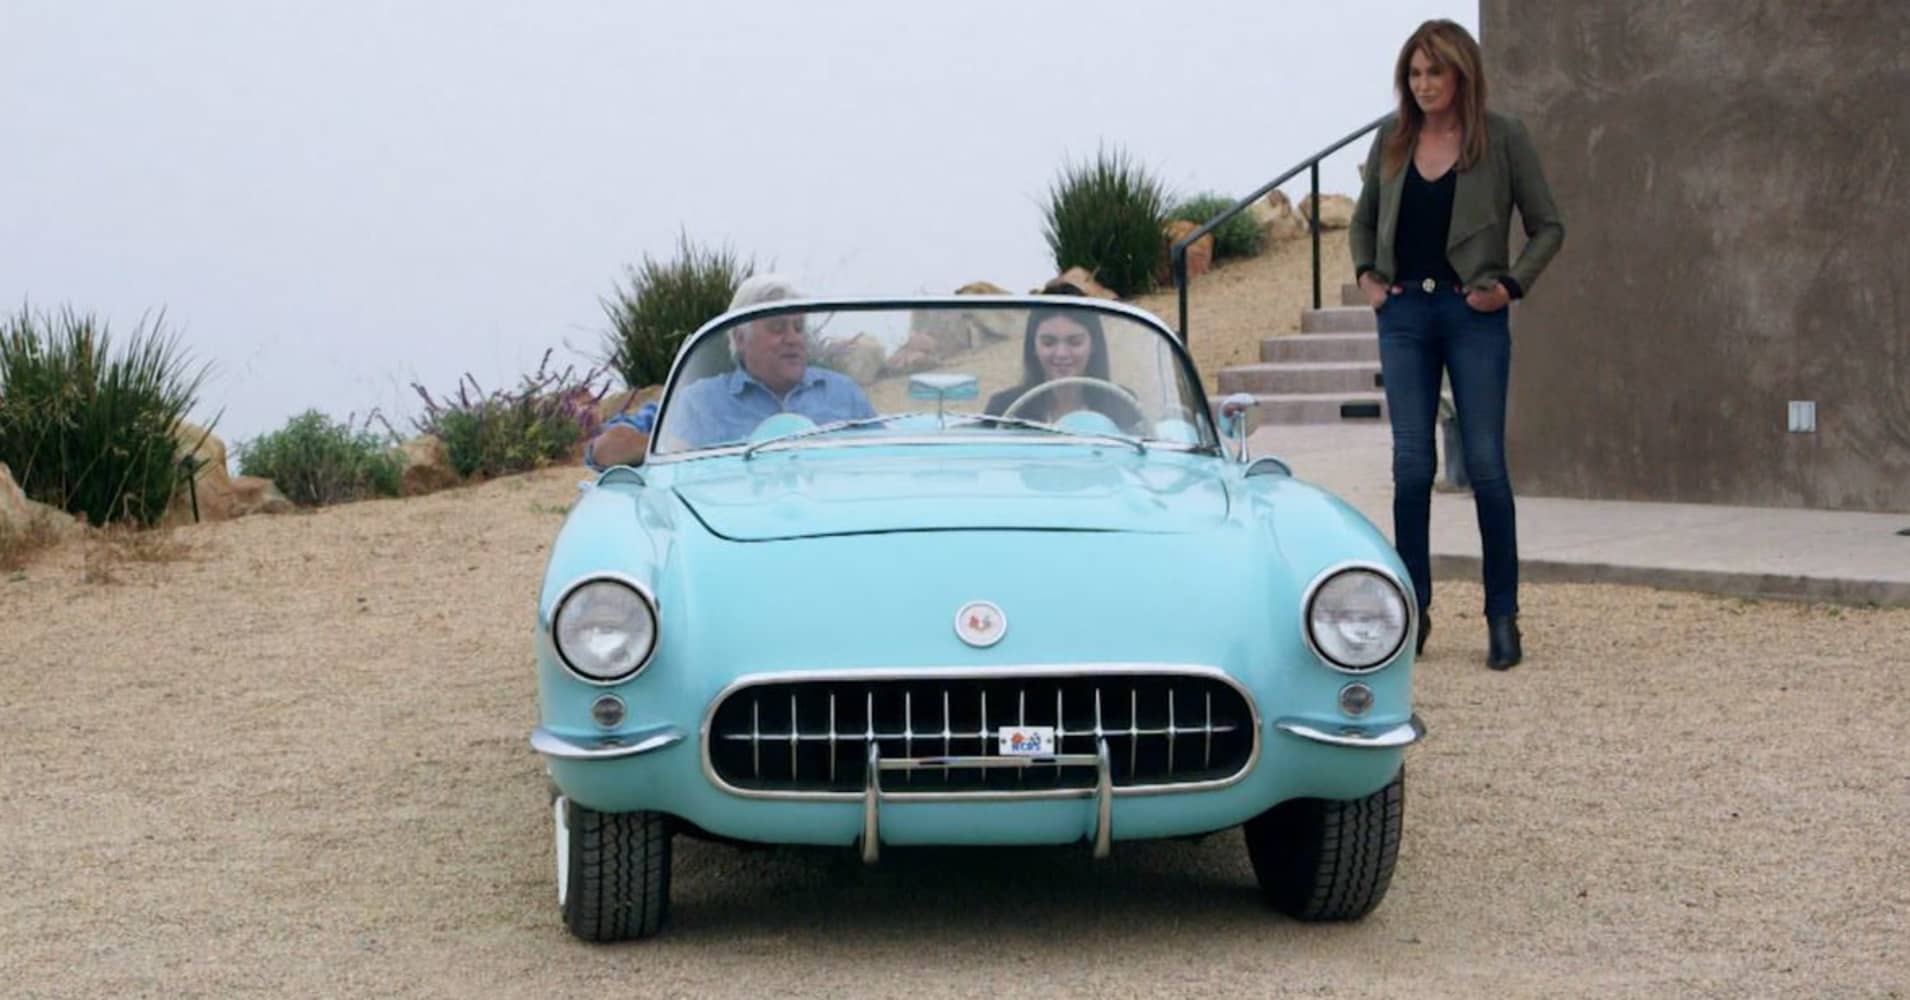 Supermodel Kendall Jenner takes Jay Leno for a spin in her